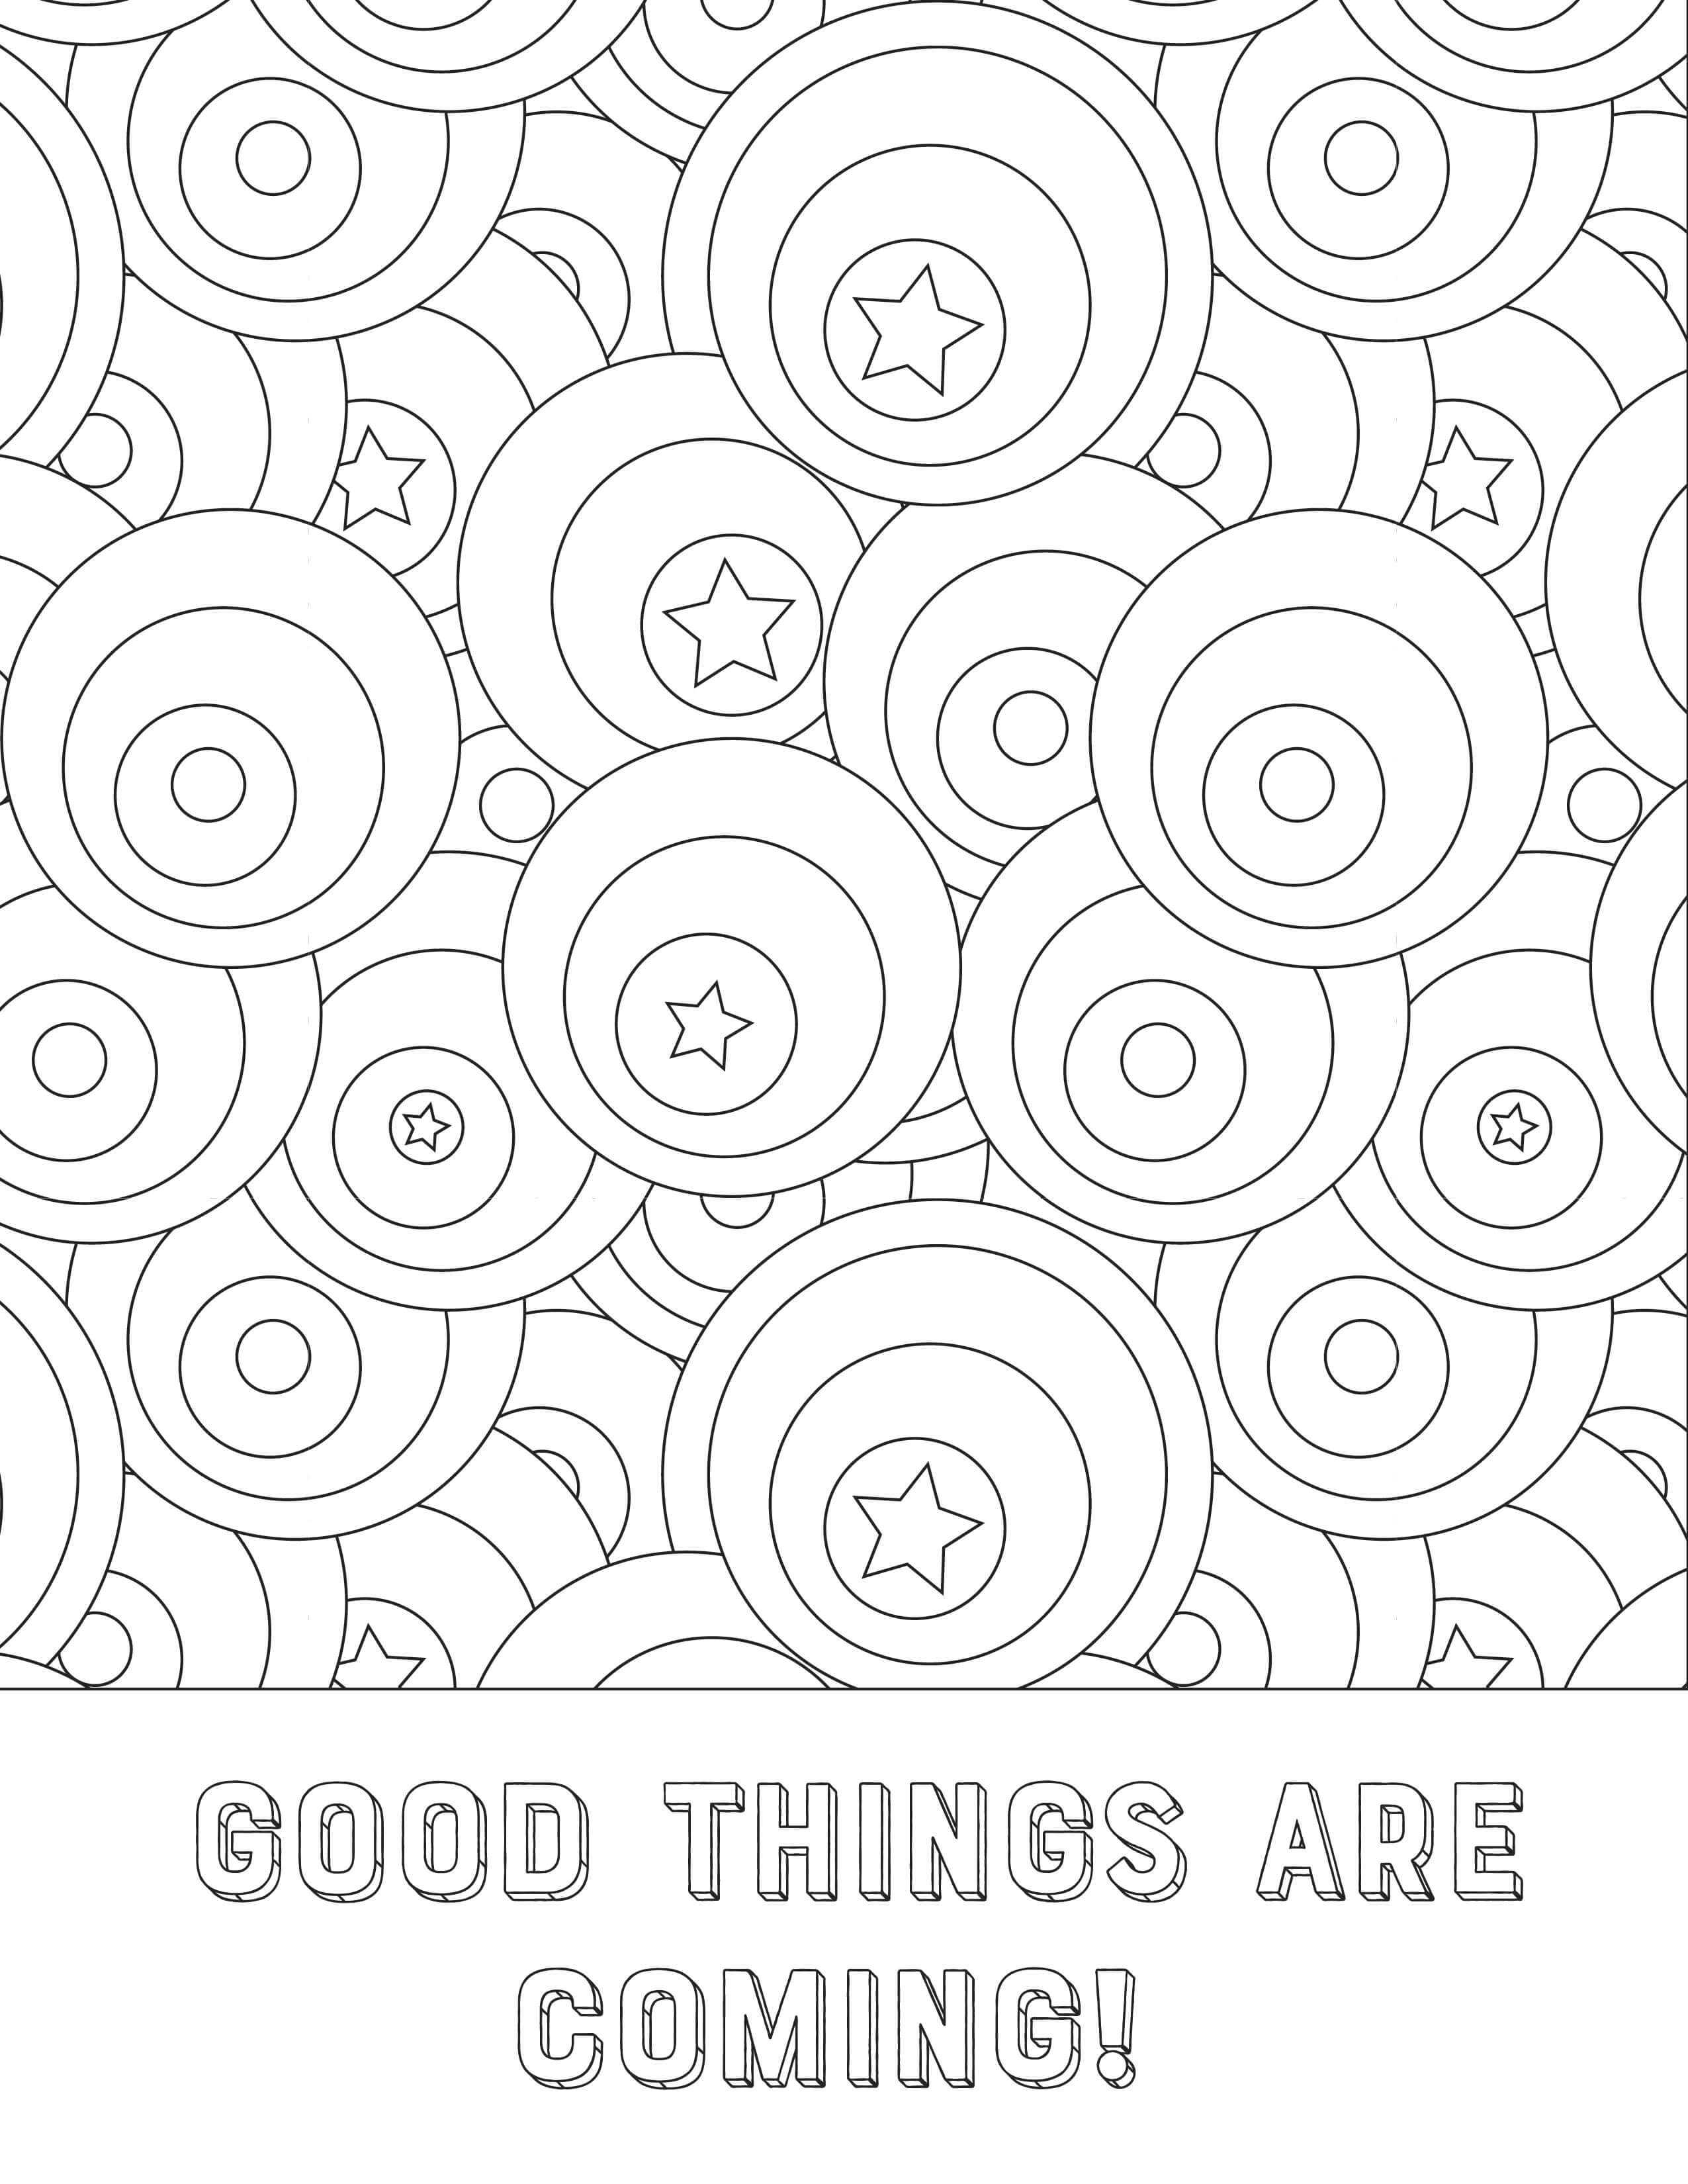 free new year coloring pages kids and adults love these free coloring pages use